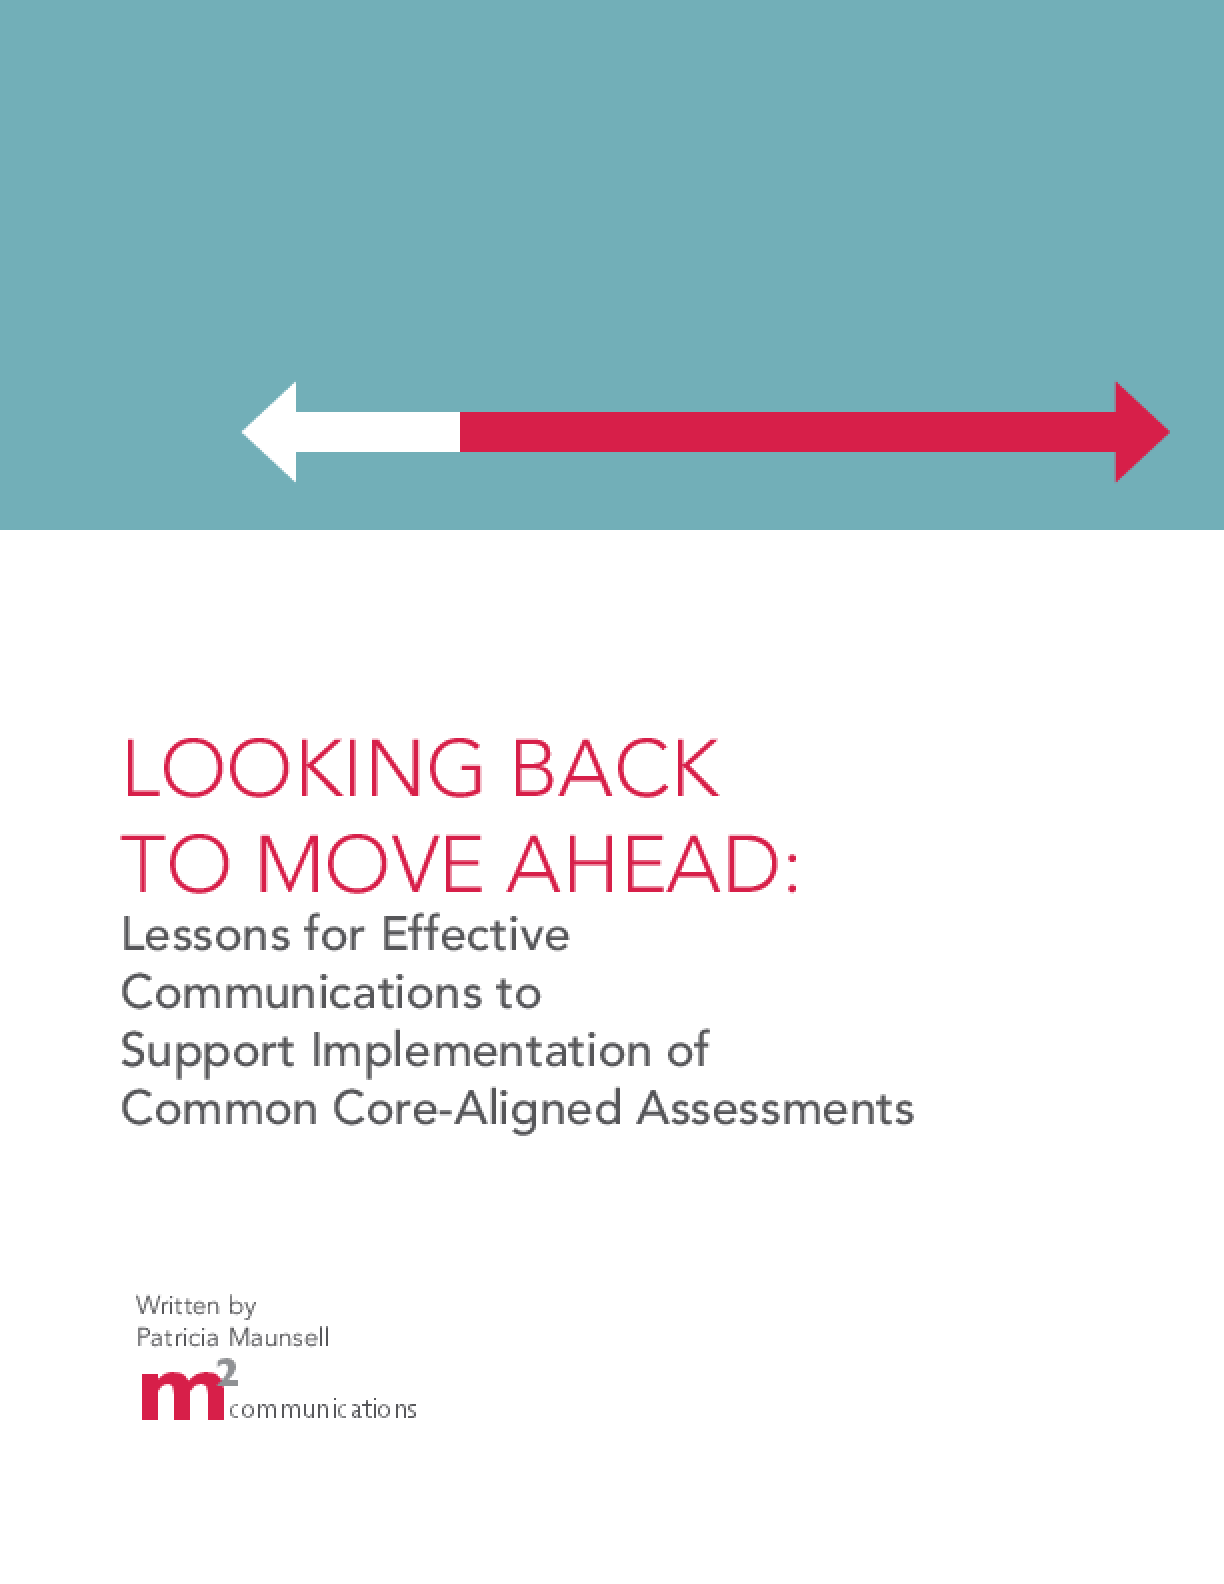 Looking Back to Move Ahead: Lessons for Effective Communications to Support Implementation of Common Core-Aligned Assessments